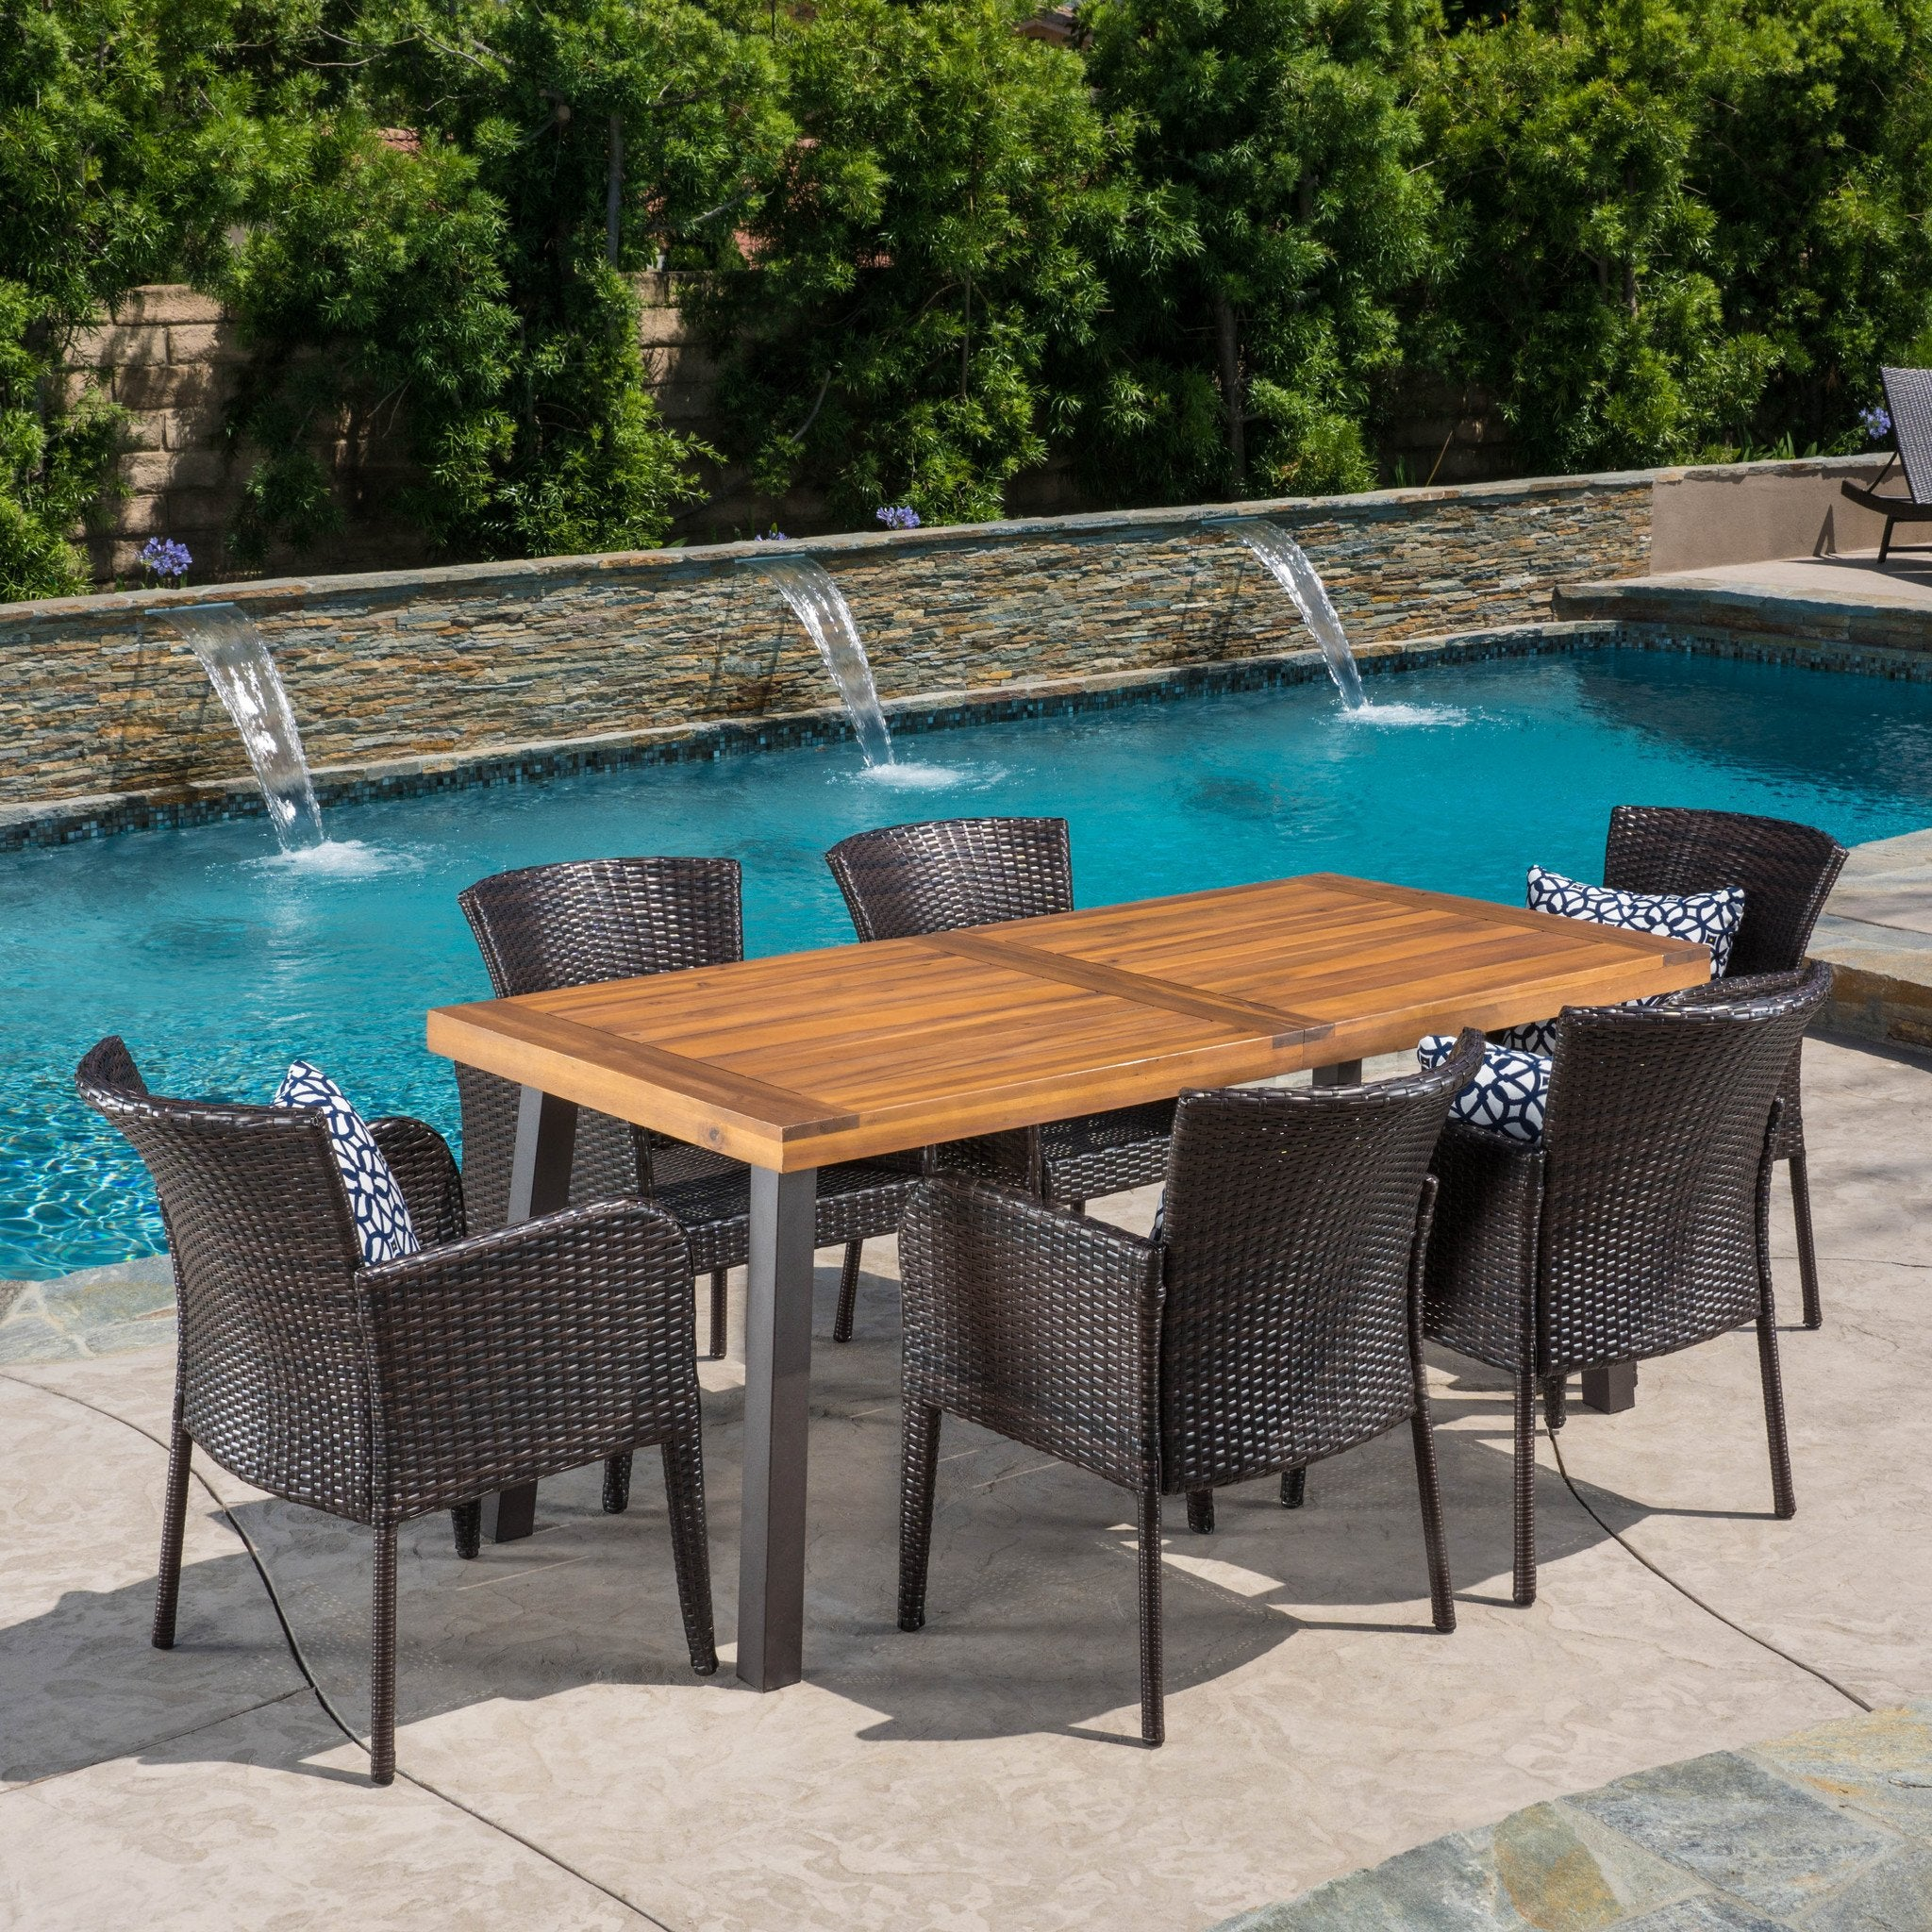 Helton Outdoor Dining Set Wood Table Wicker Chairs foto